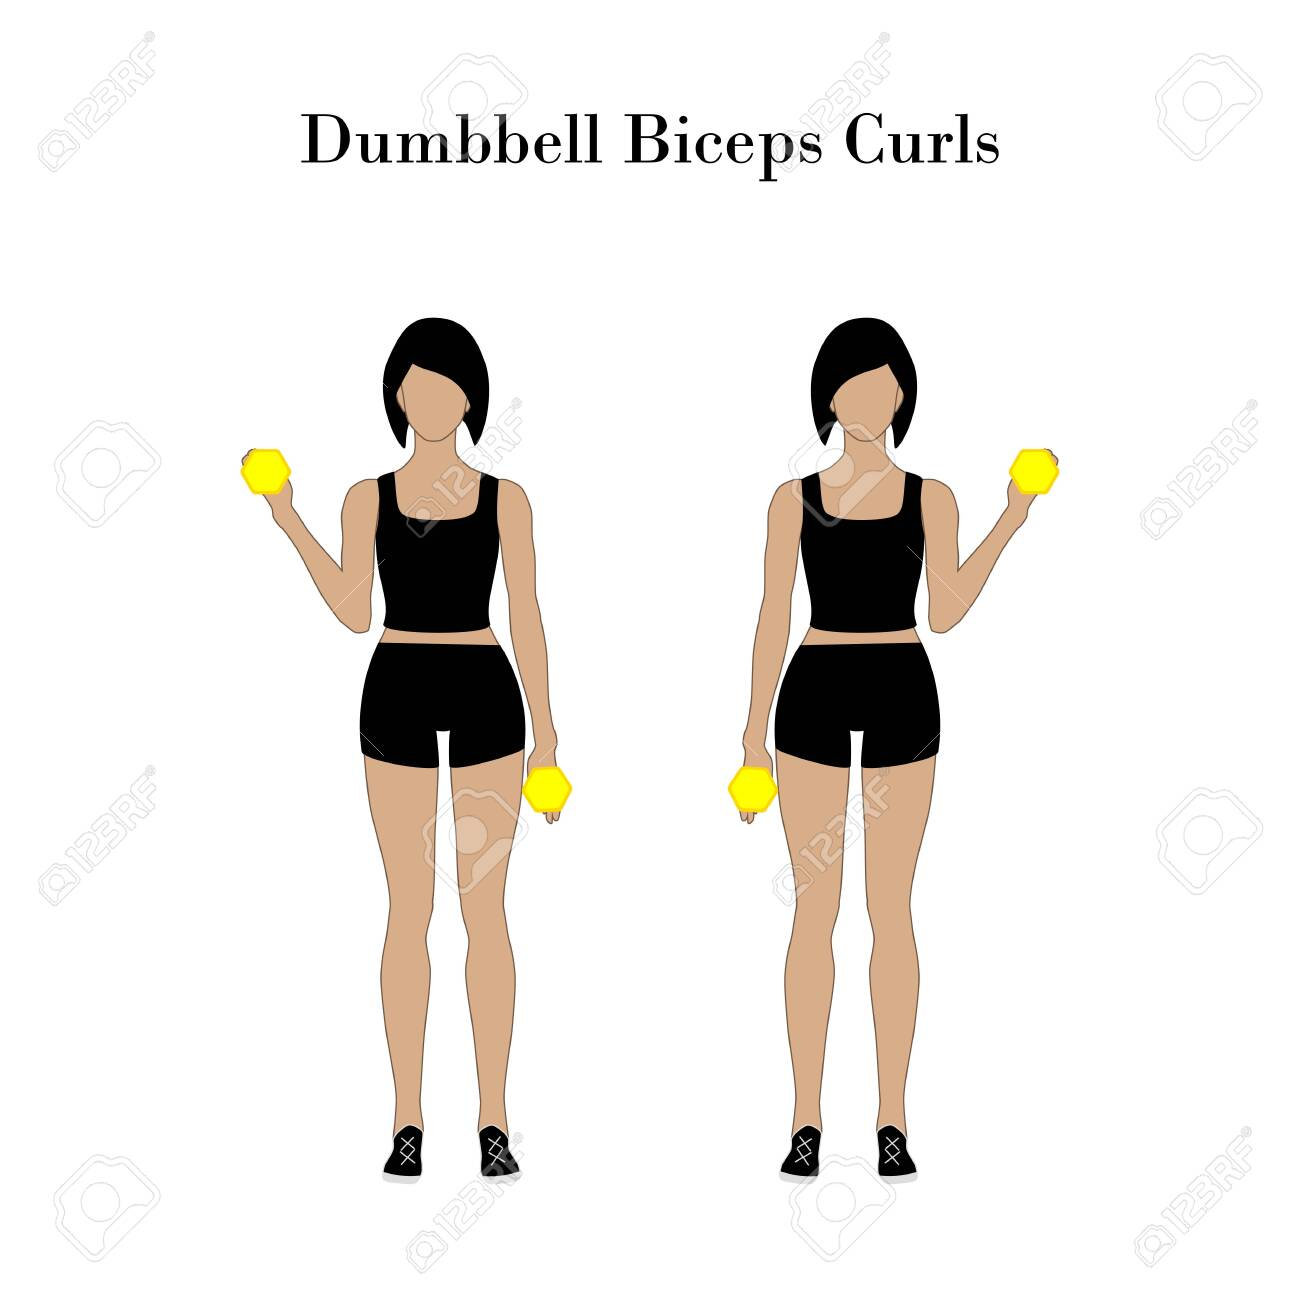 Dumbbell biceps curls exercise - 122616560